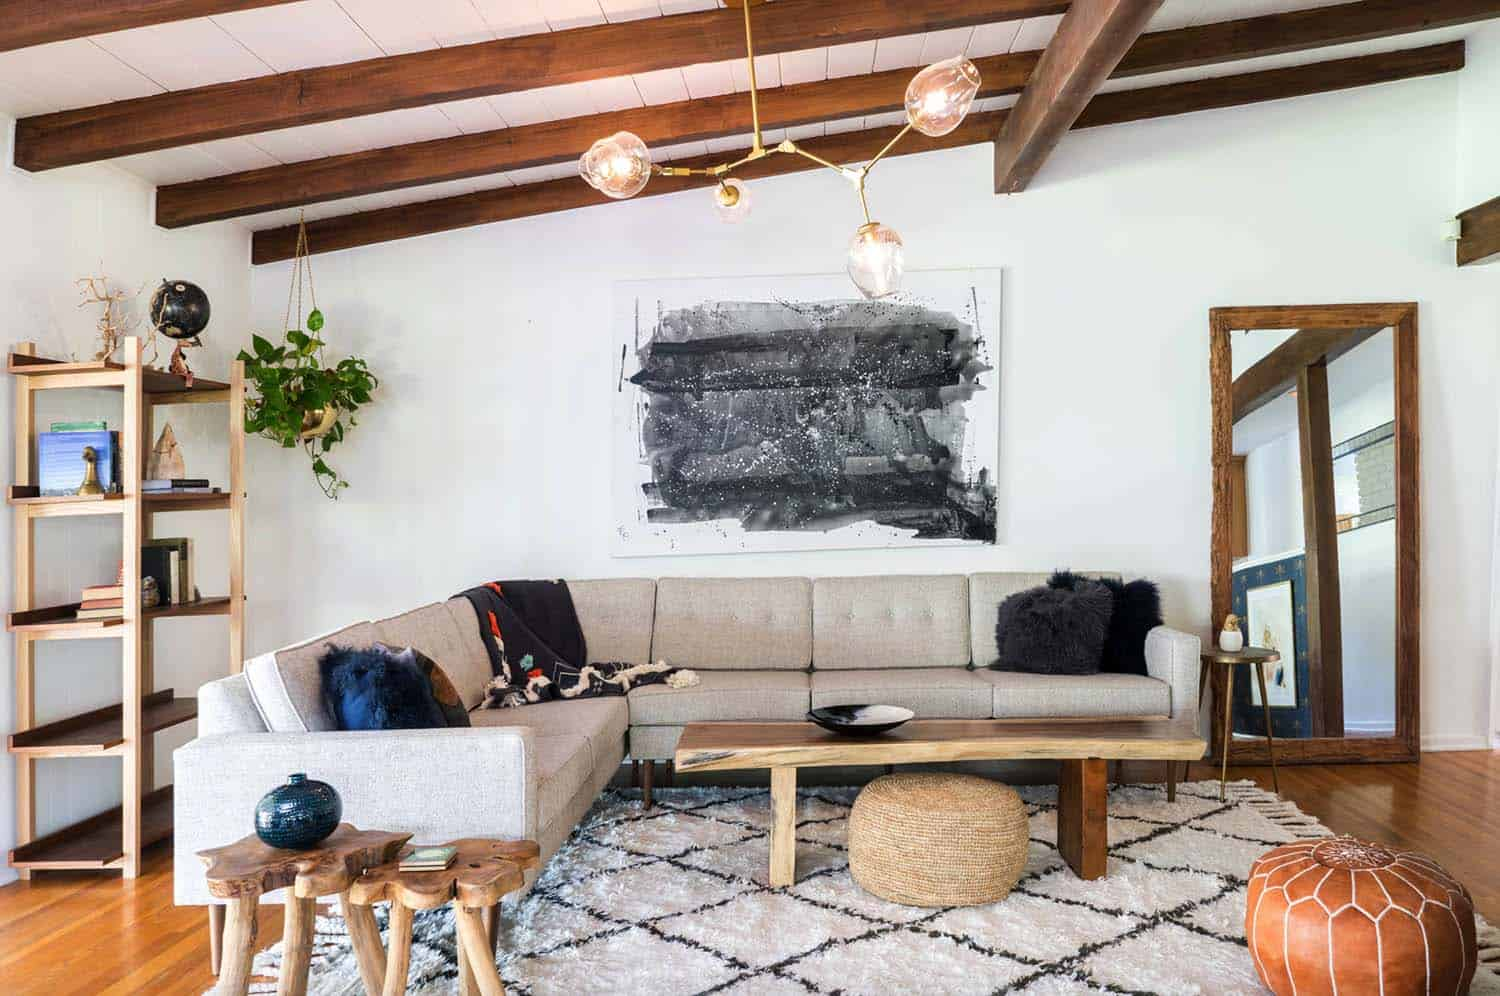 Delightful A Mid Century Living Room In Studio City, California Is Warm And Cozy  Thanks To Wood Flooring And Wood Beam Ceilings. Illuminating The Space Is  The Lindsey ...